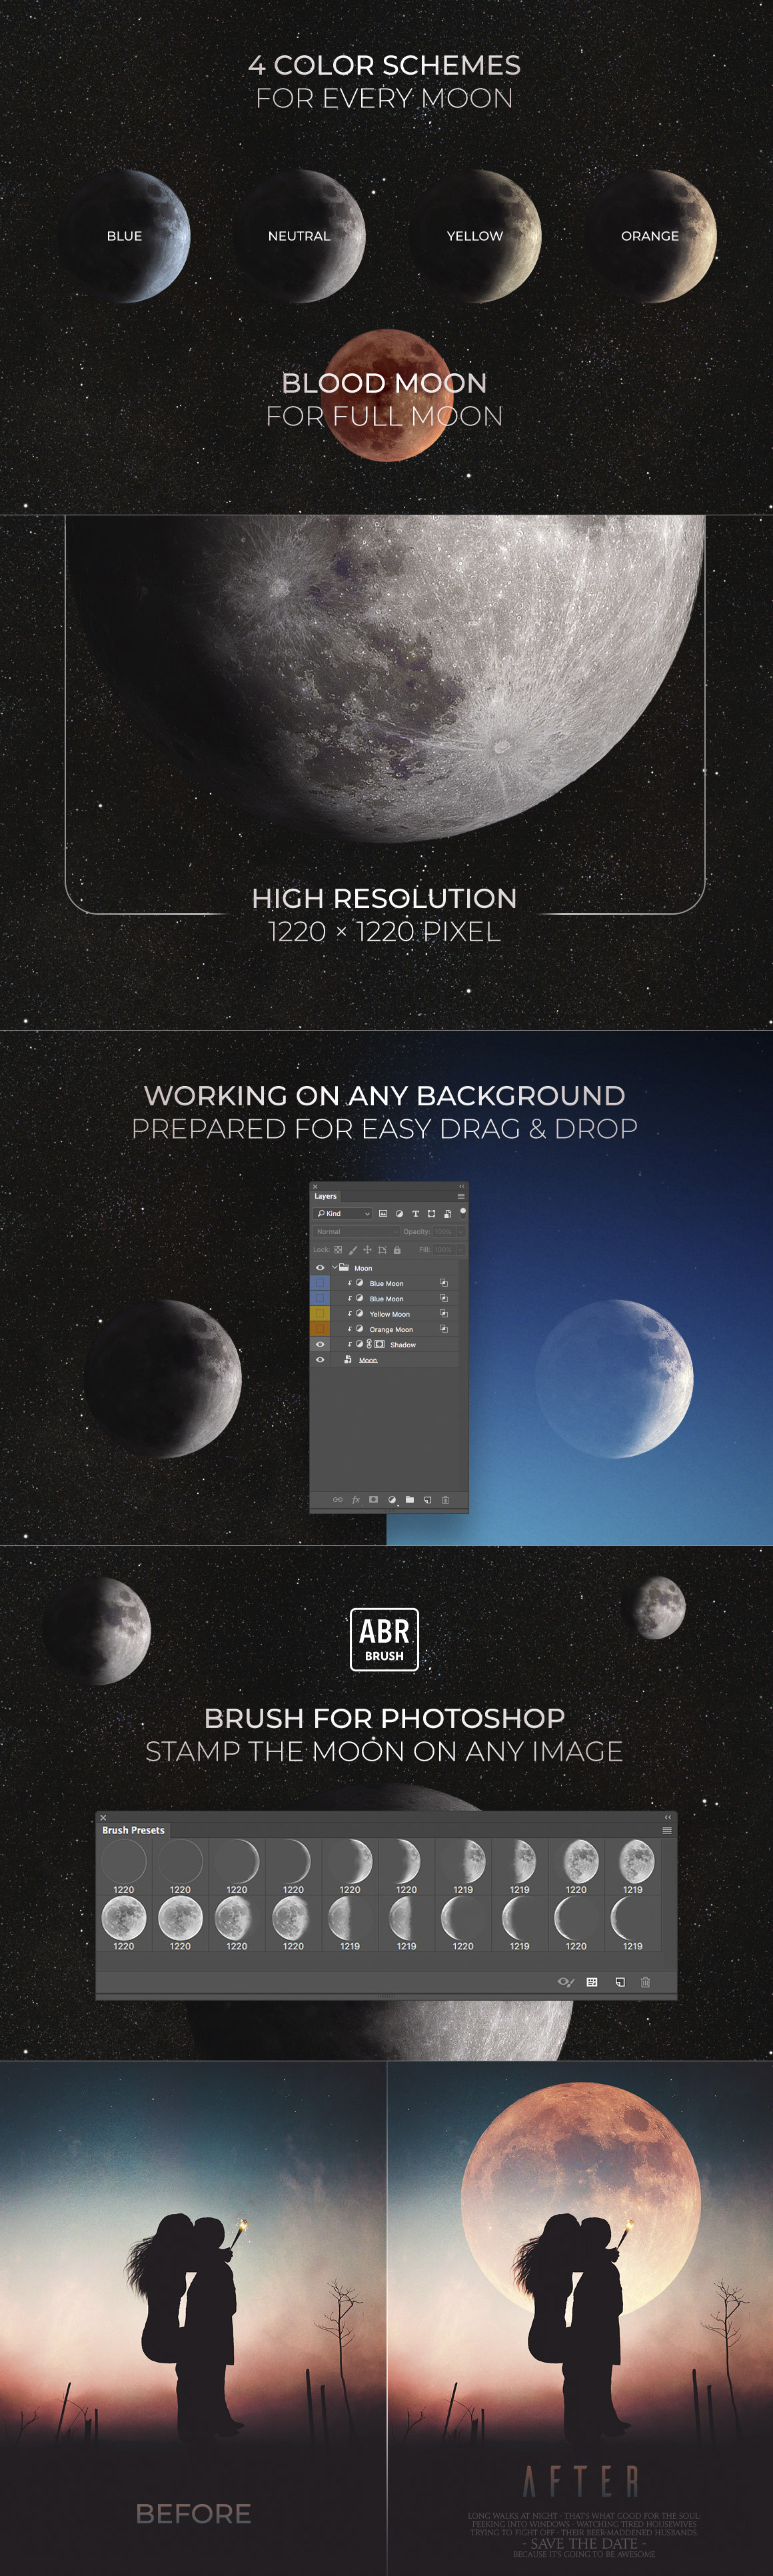 High-Res Moon Cycle for Image Editing